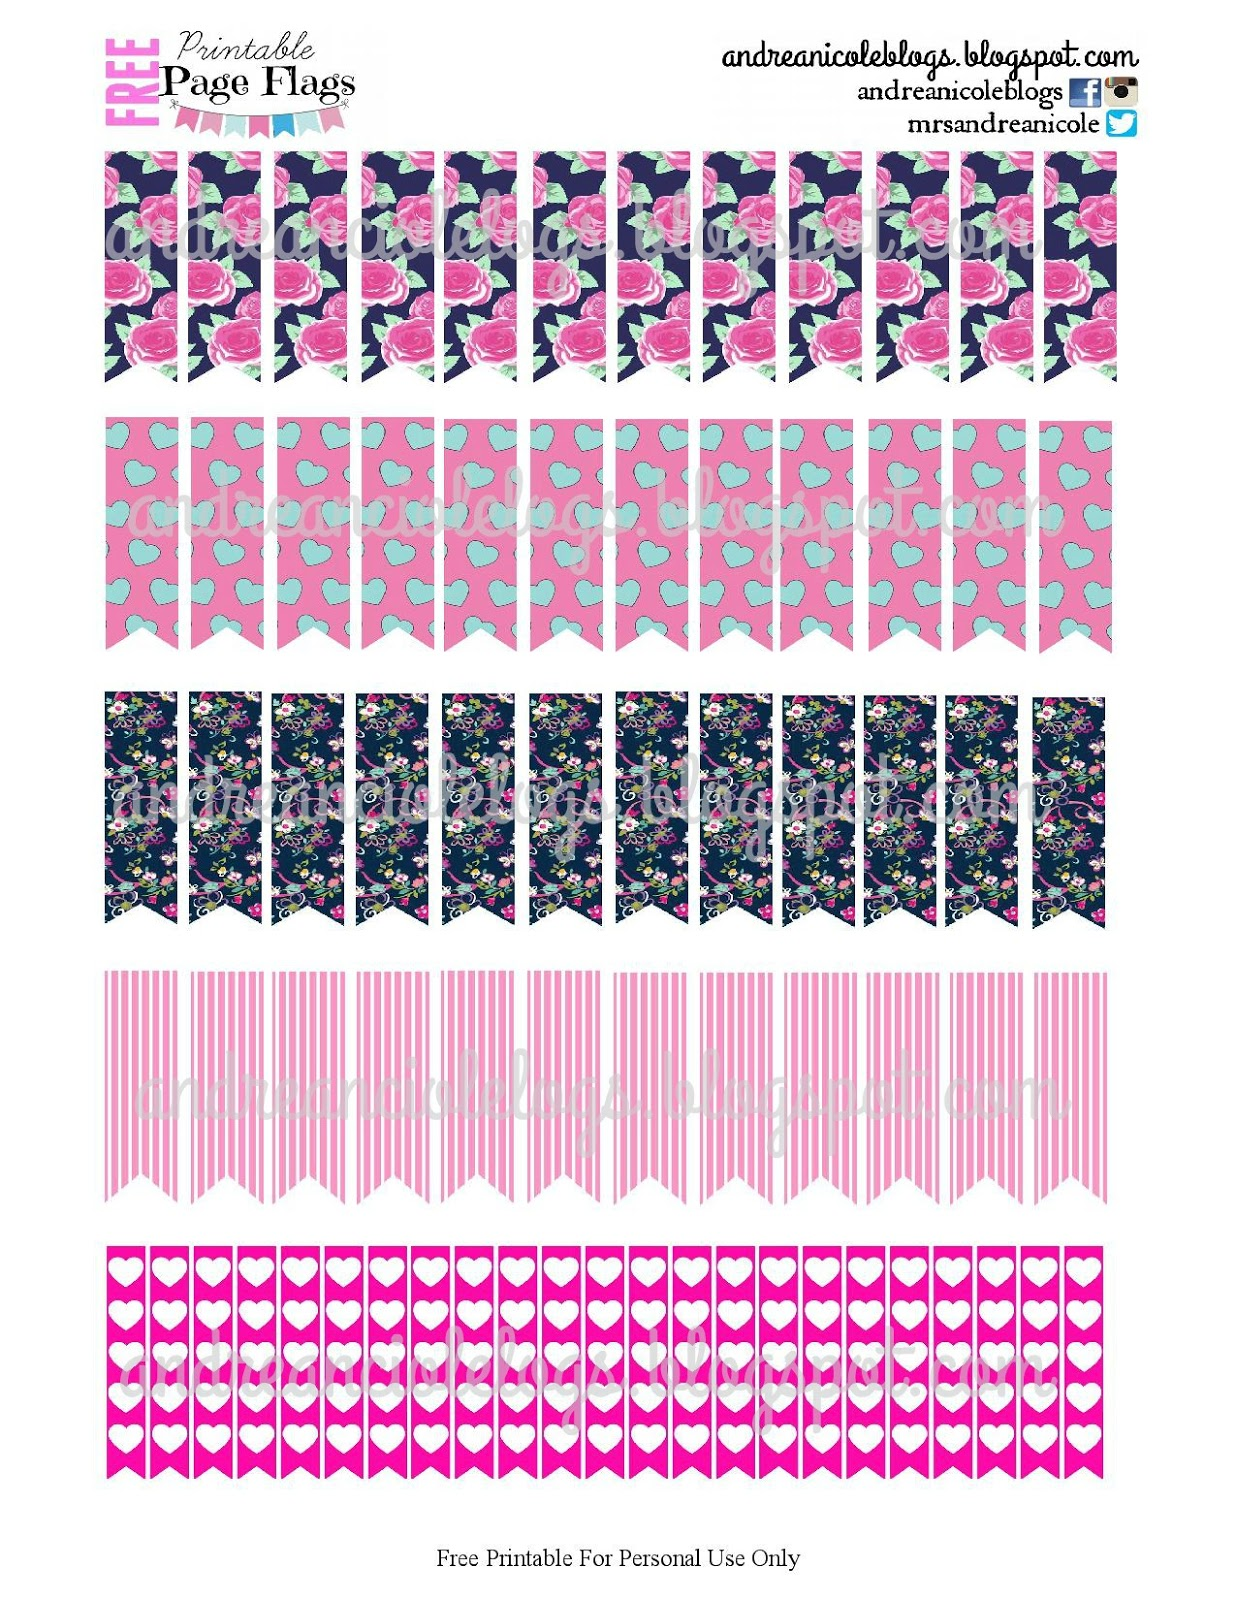 Andrea Nicole Free Printable Page Flags